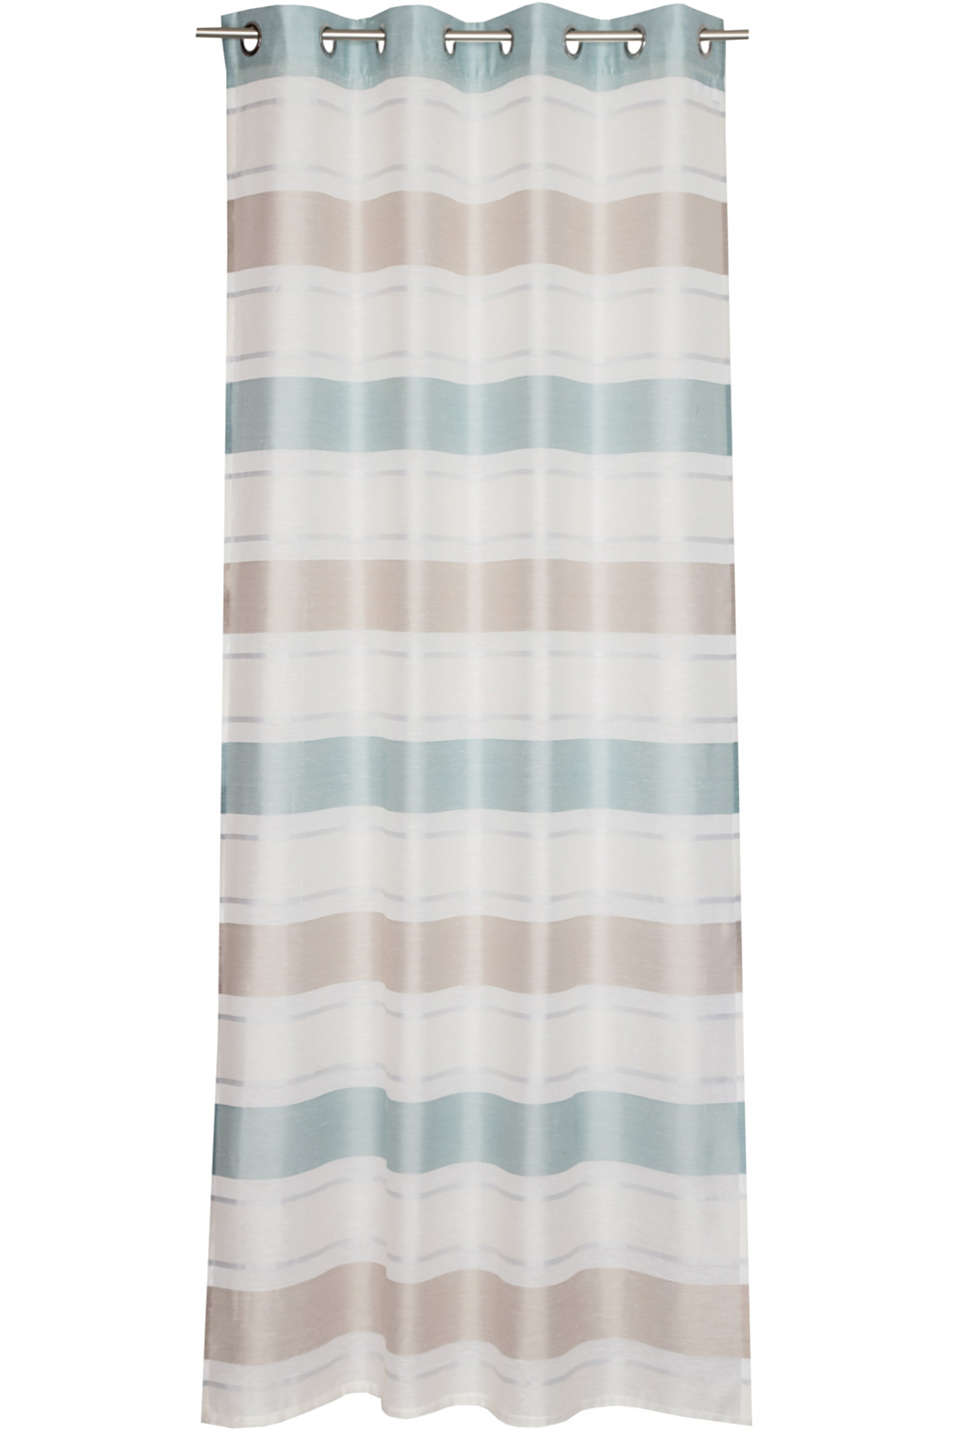 Eyelet curtain with stripes, AQUA, detail image number 0